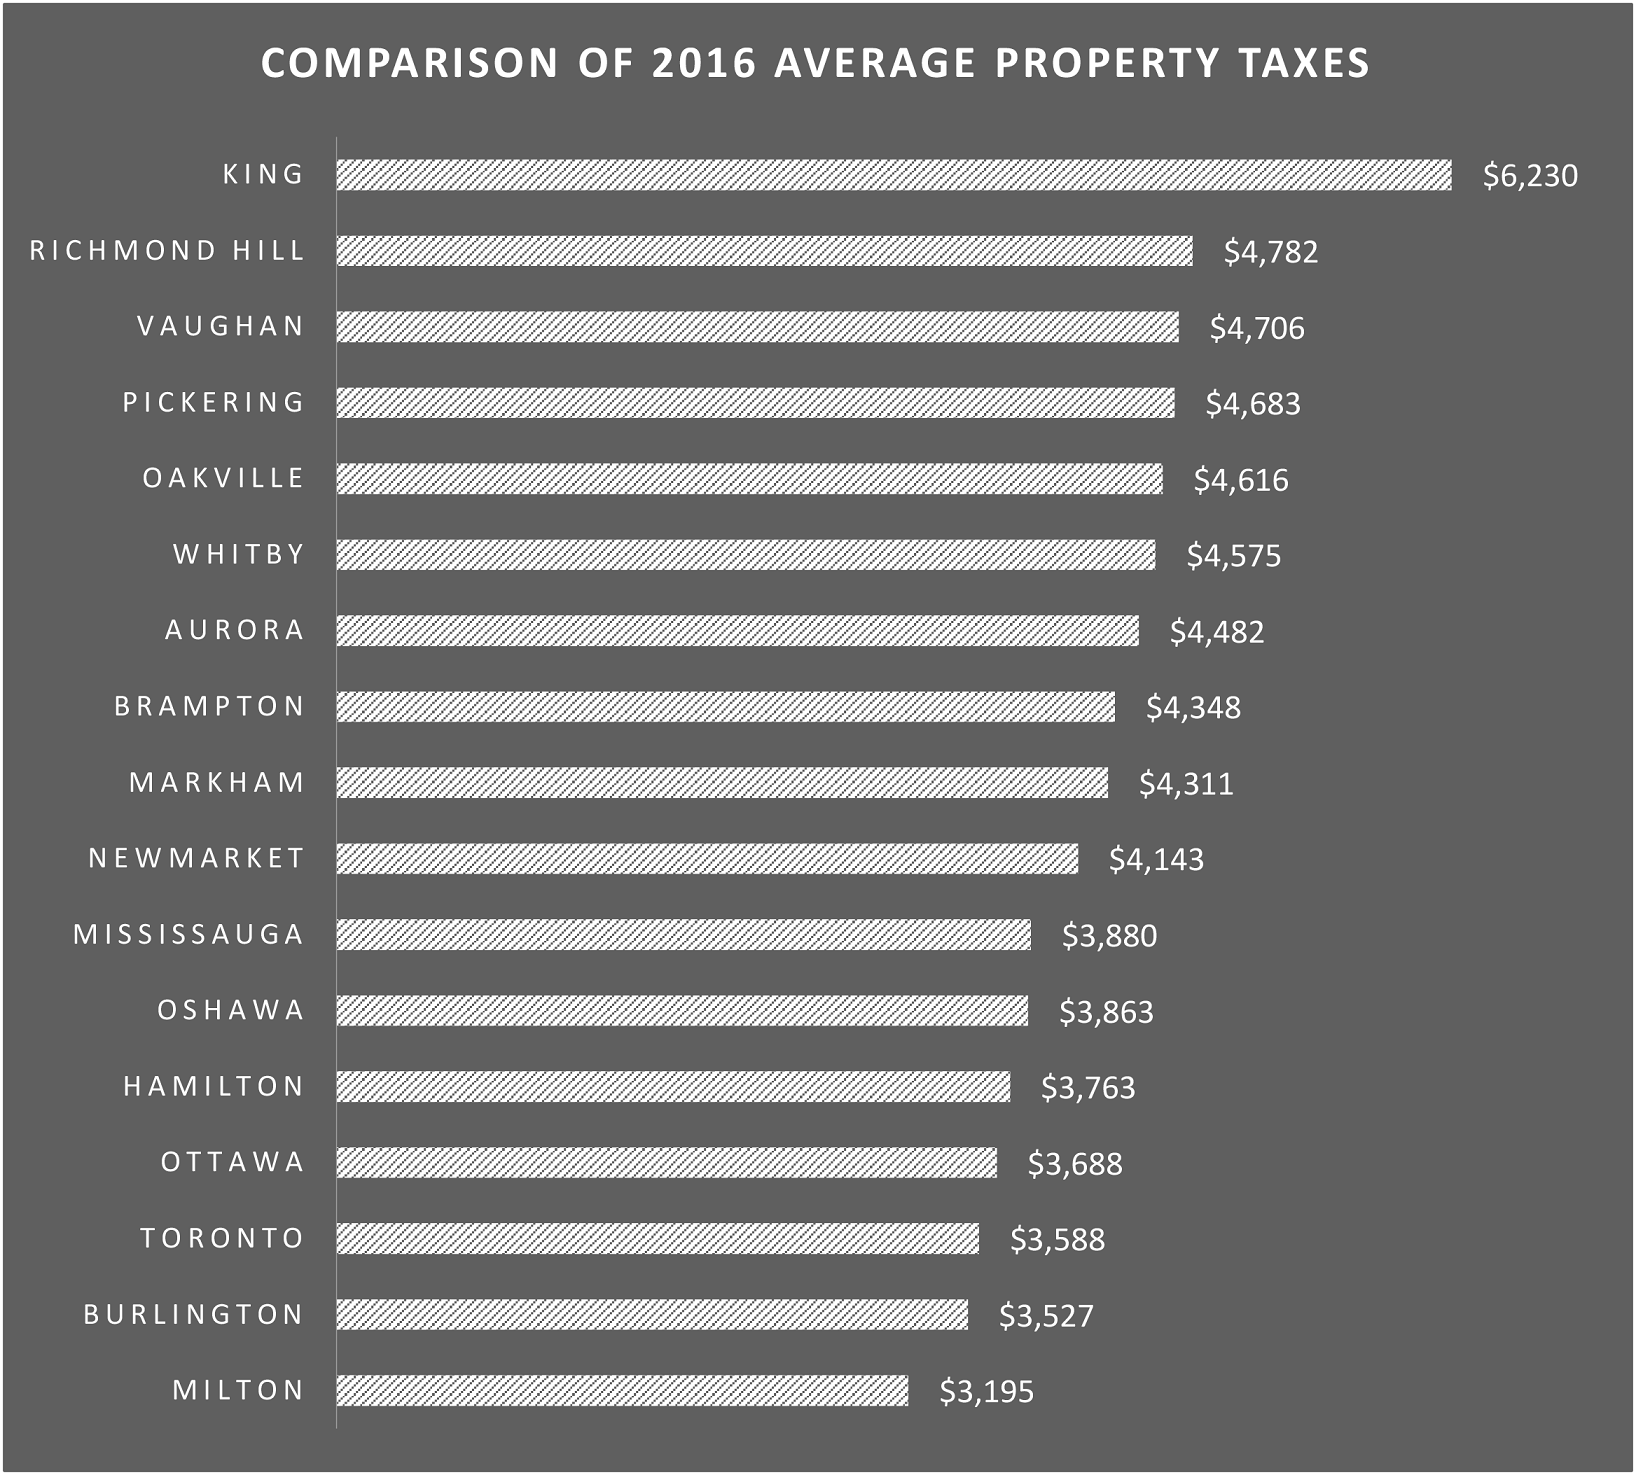 Toronto Property Taxes Among the Lowest